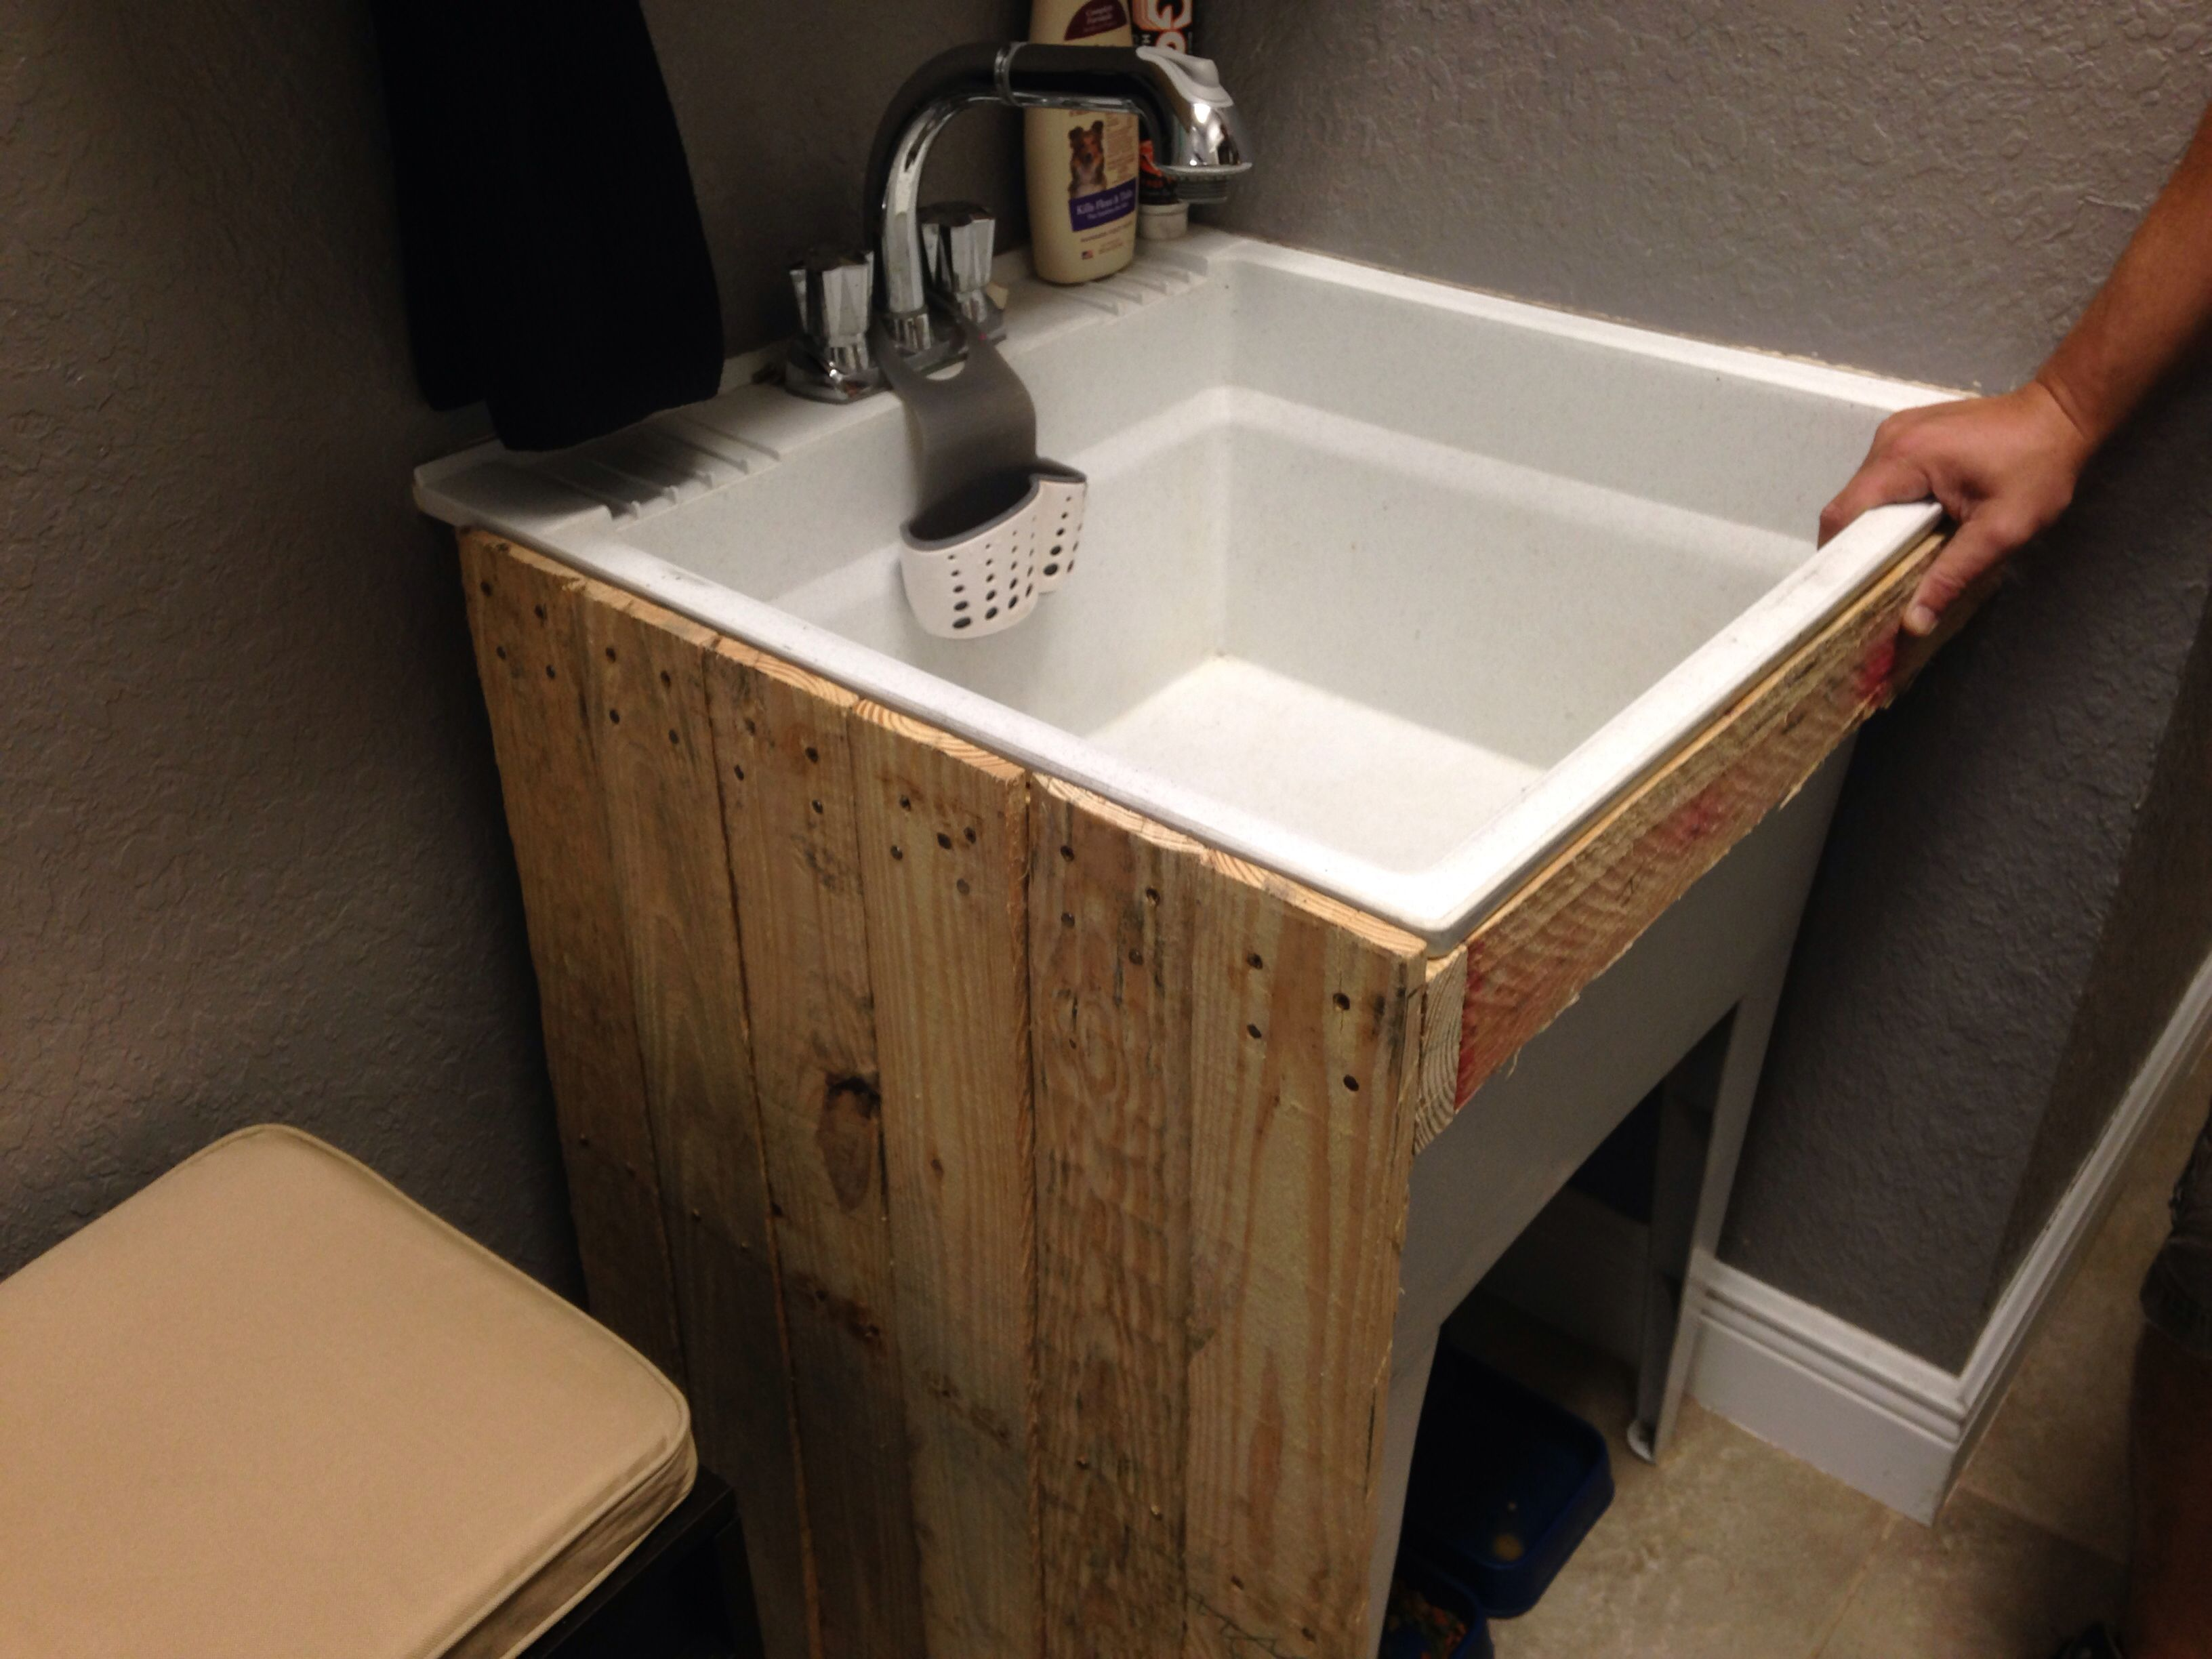 Garage Utility Sink Lovely Laundry Room Utility Sink Ideas 16 With Additional New Home